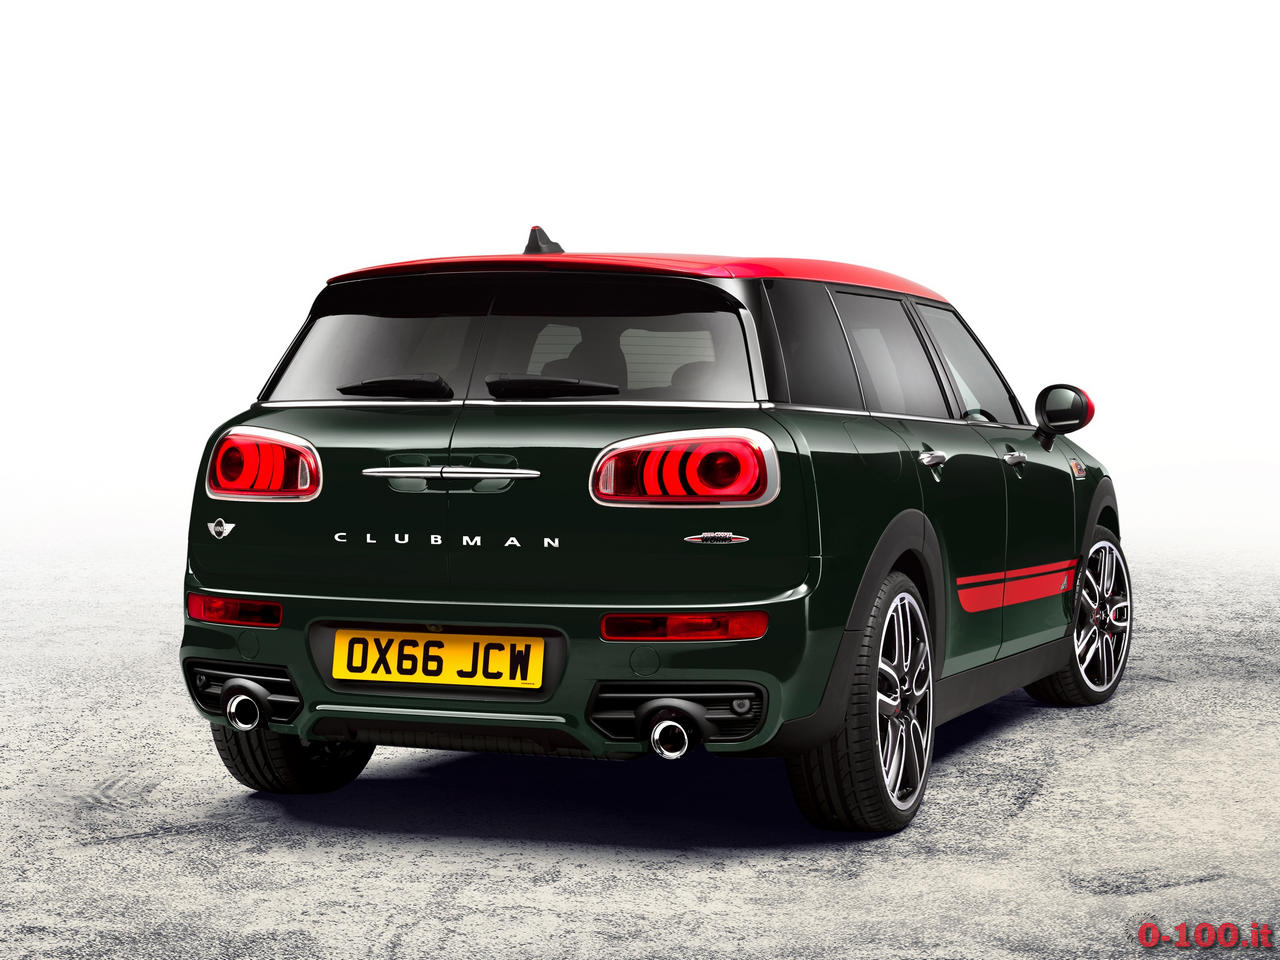 anteprima parigi 2016 mini john cooper works clubman 0. Black Bedroom Furniture Sets. Home Design Ideas